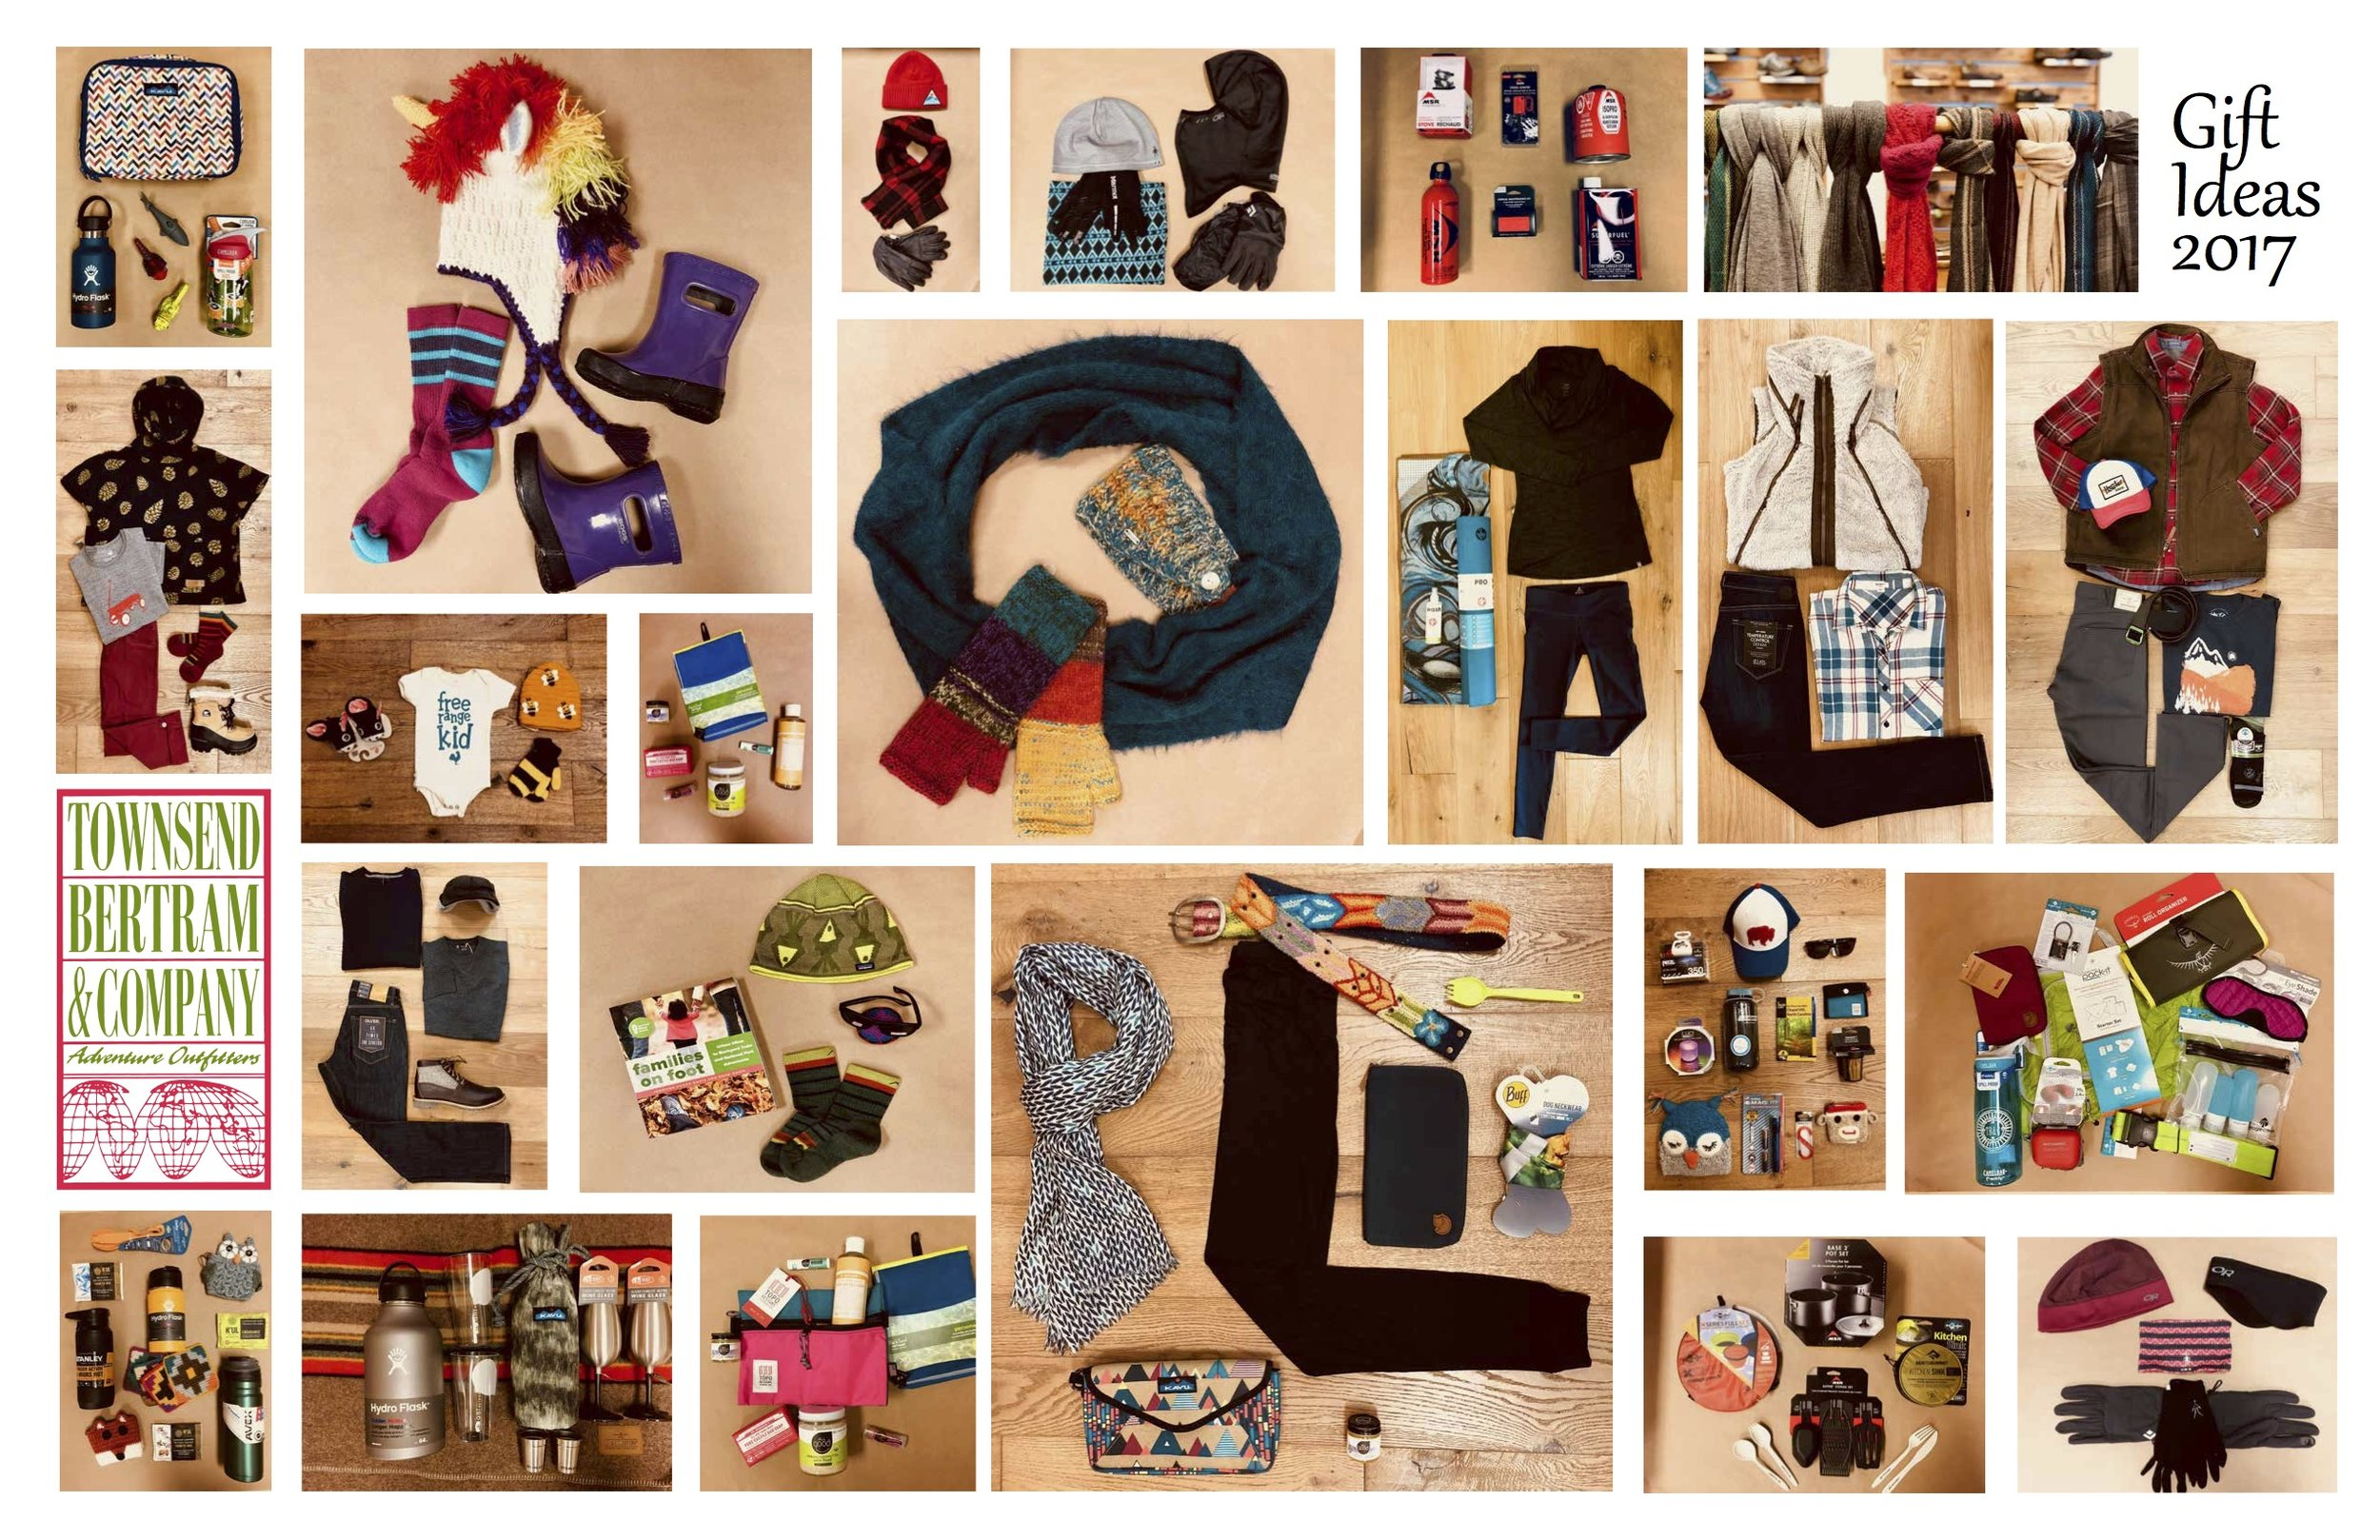 Stop by the store to check out TB&C's gift guide for great ideas for everyone on your list.